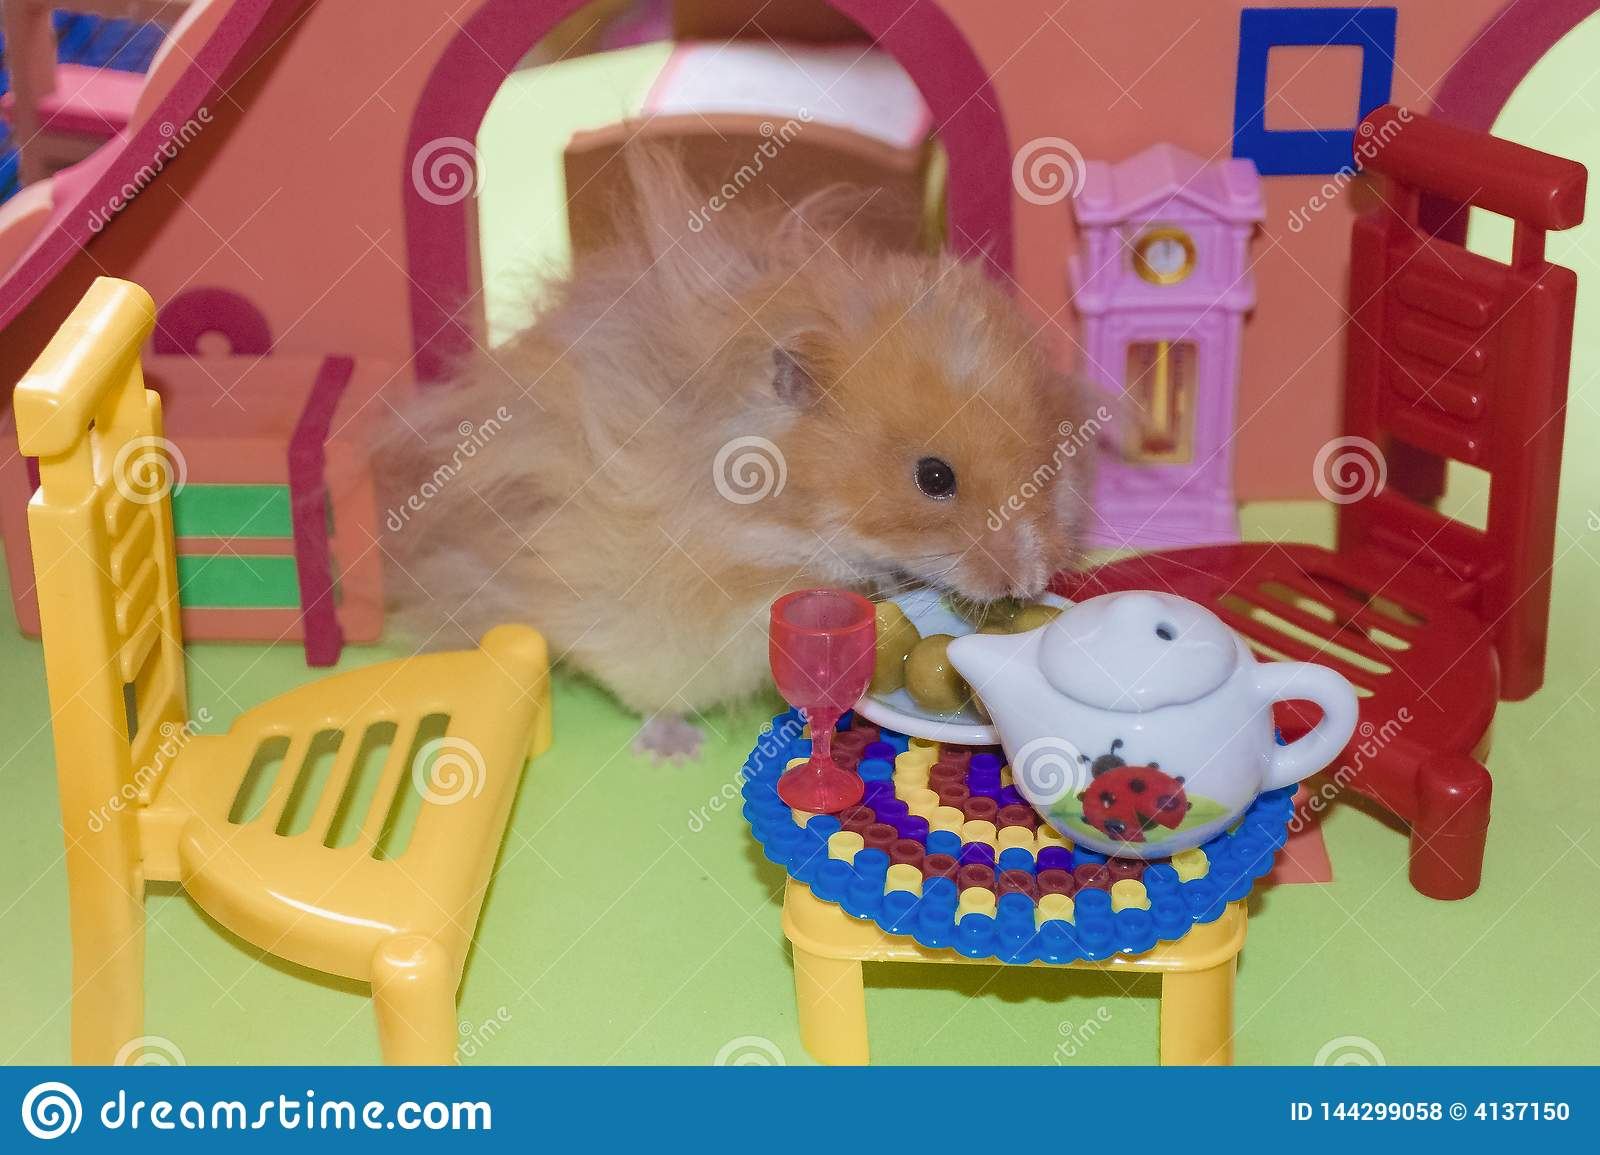 Cute fluffy light brown hamster eats peas at the table in his house.